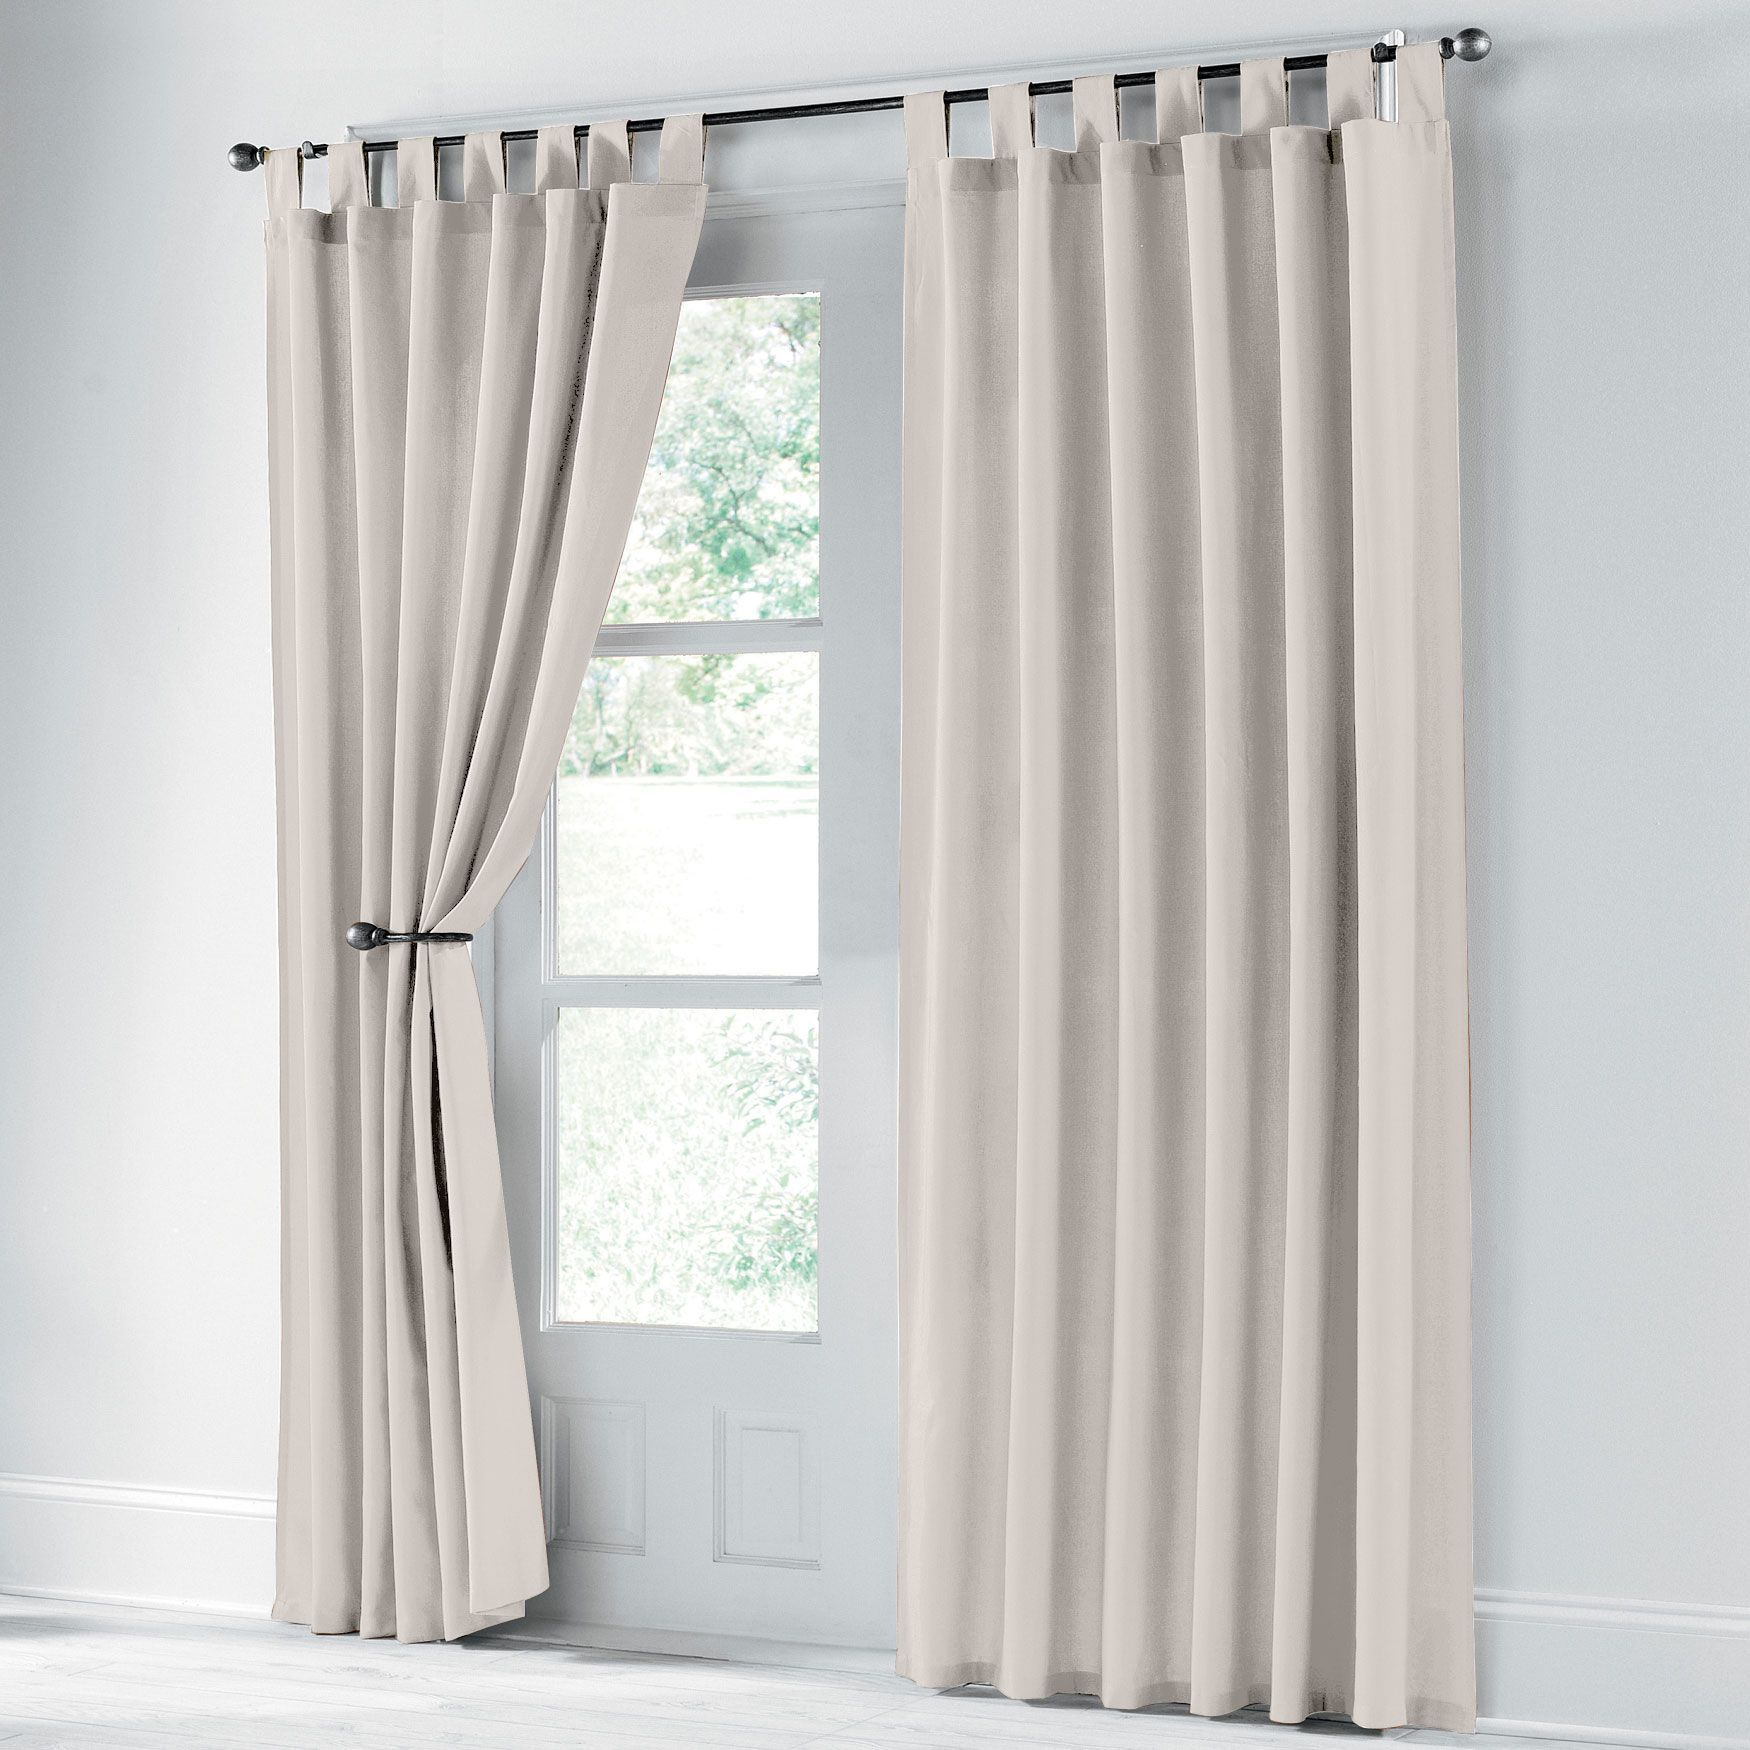 Scenario Cotton Canvas Solid Tab Top Panels Curtains Draperies Brylanehome Curtains And Draperies Indoor